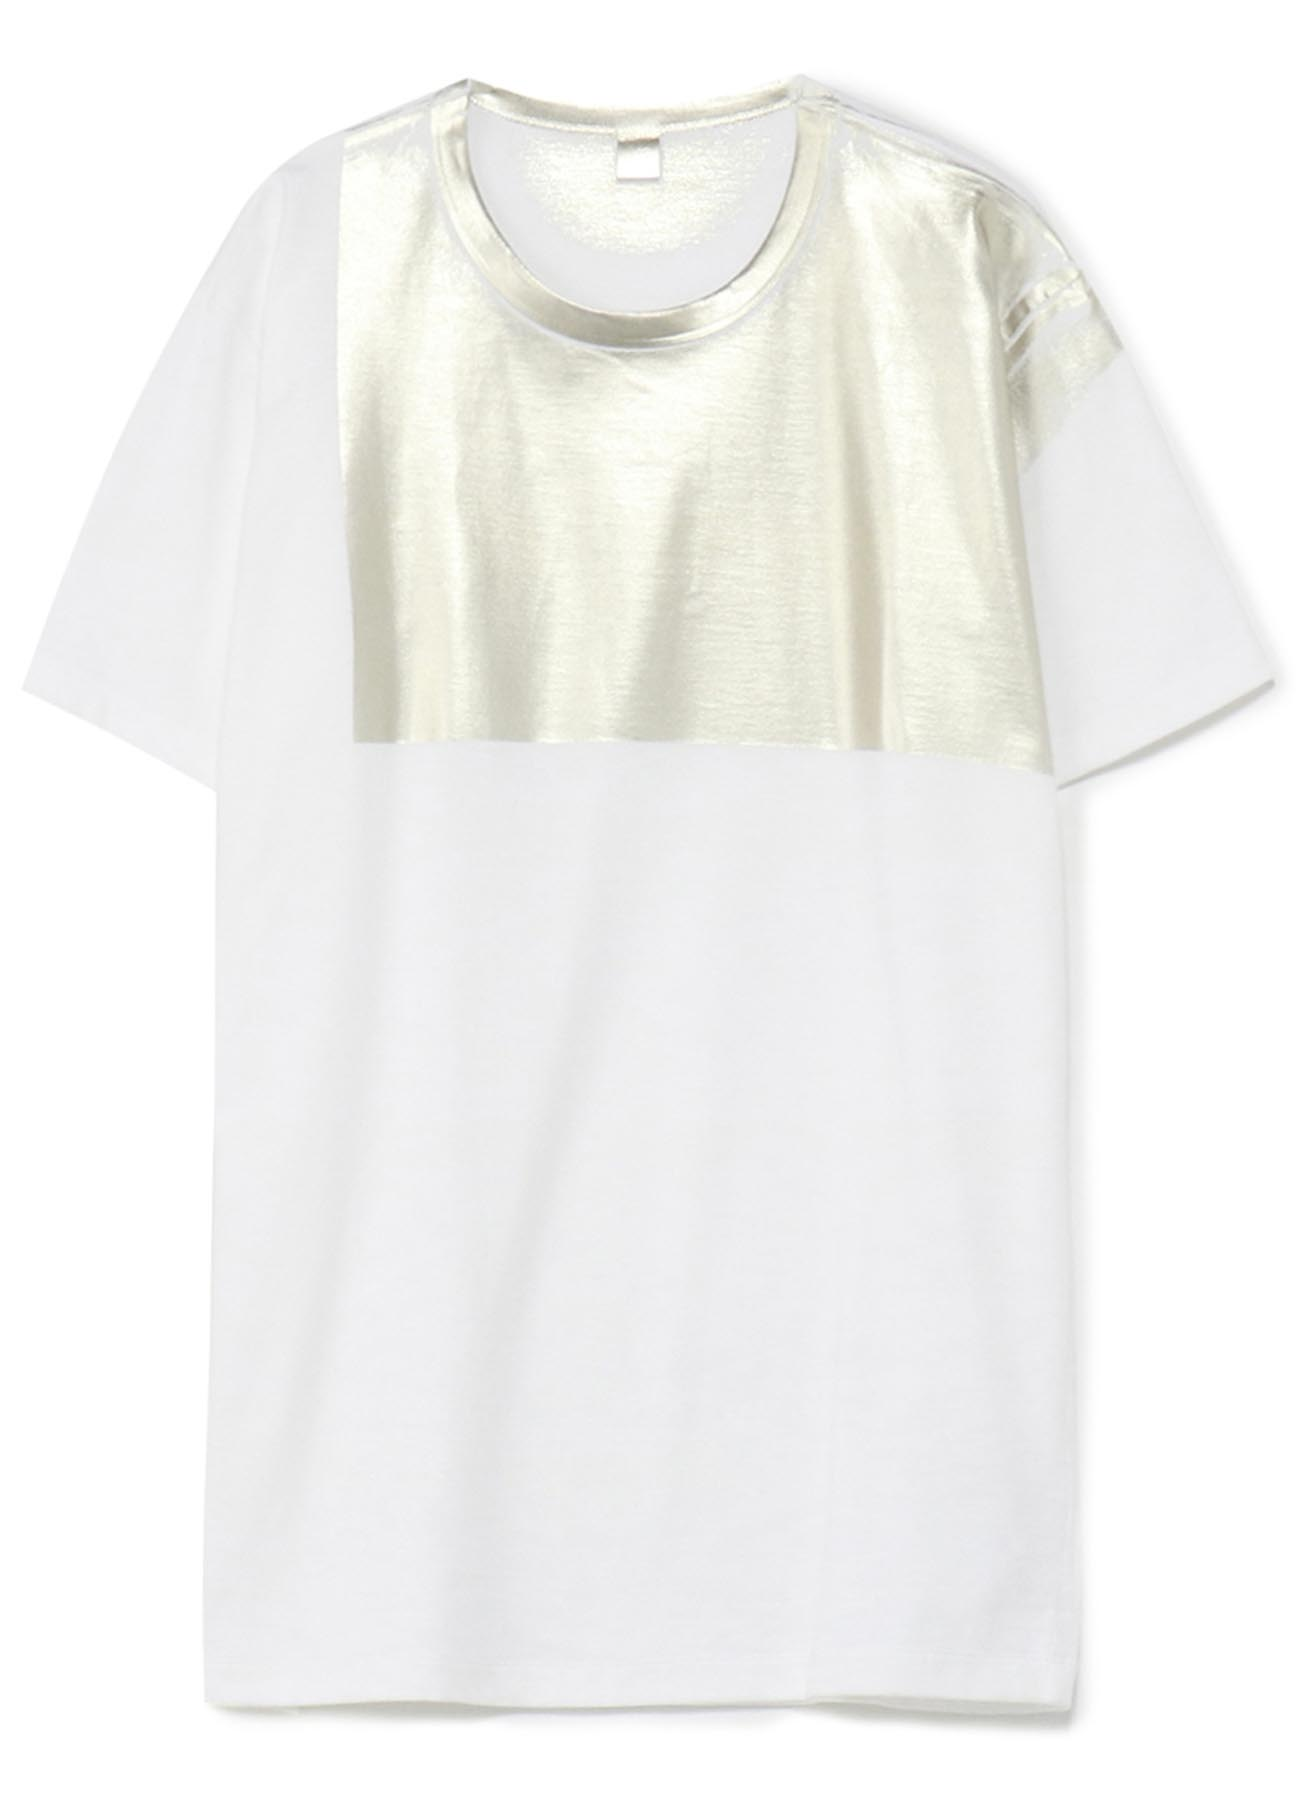 COTTON FOIL PRINT T-SHIRT